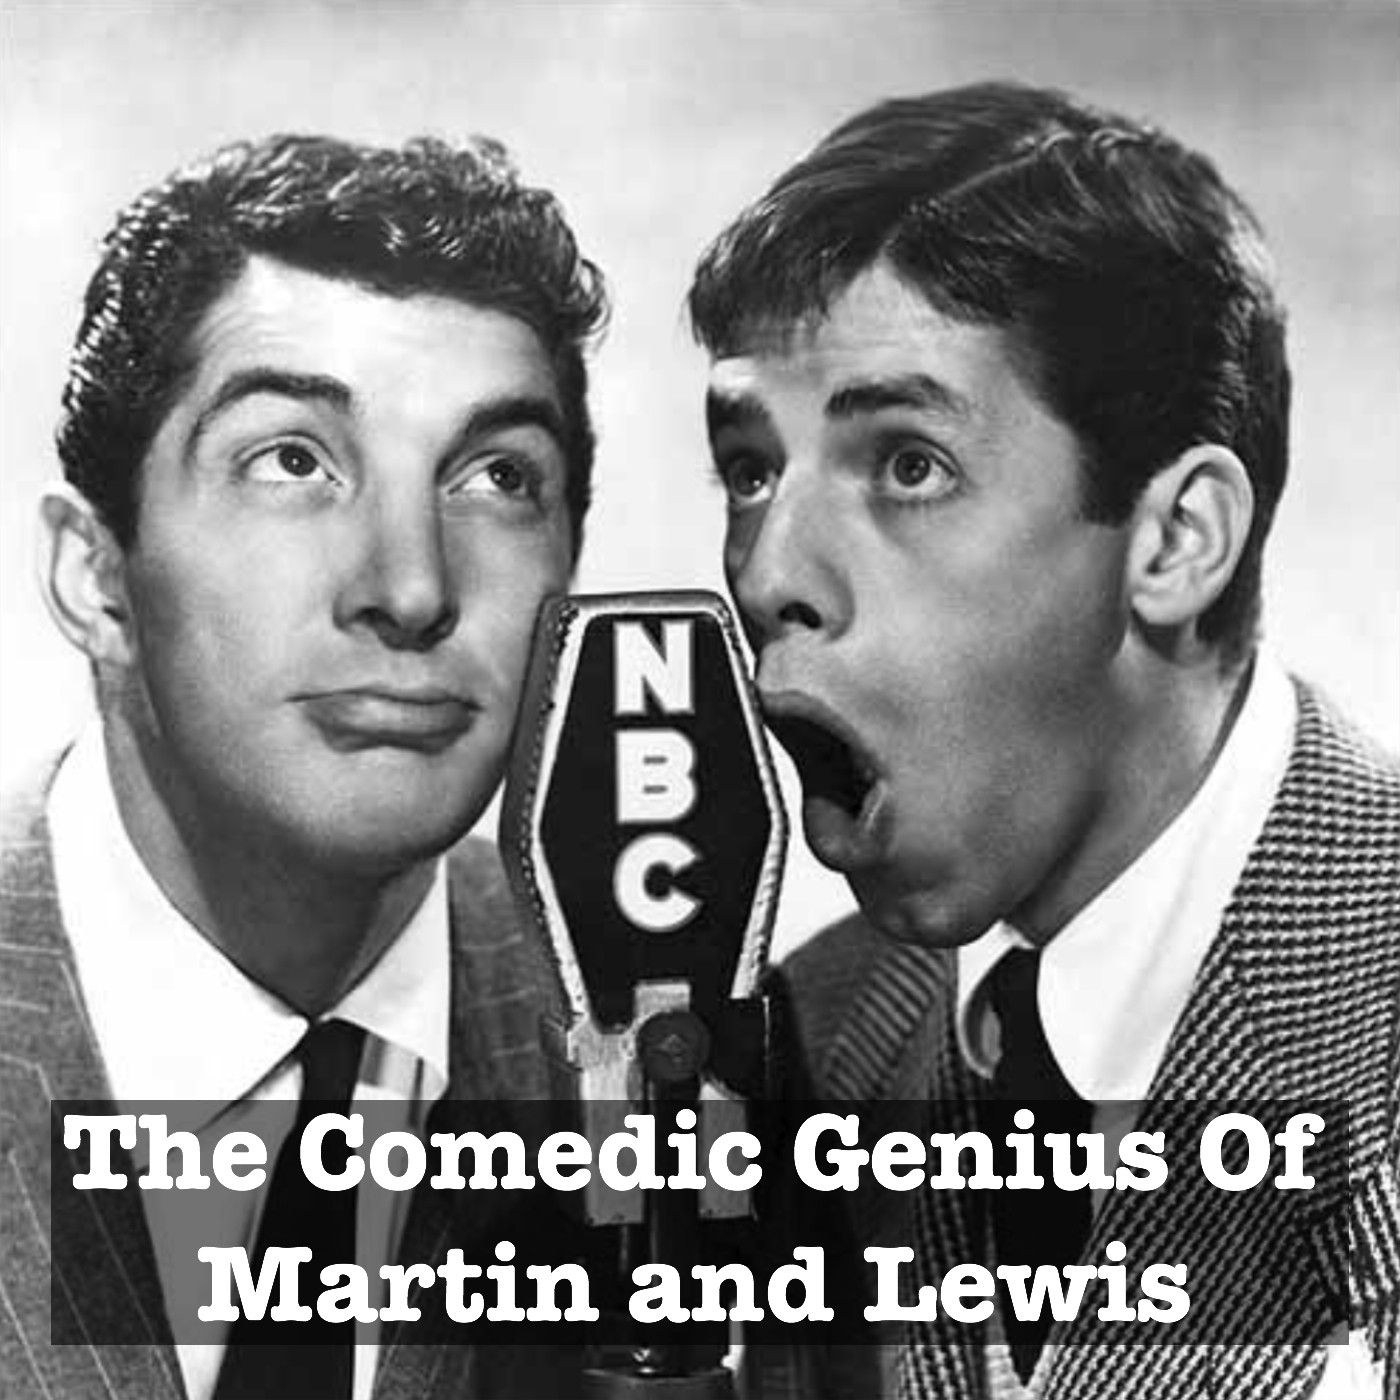 The Comedic Genius of Martin and Lewis